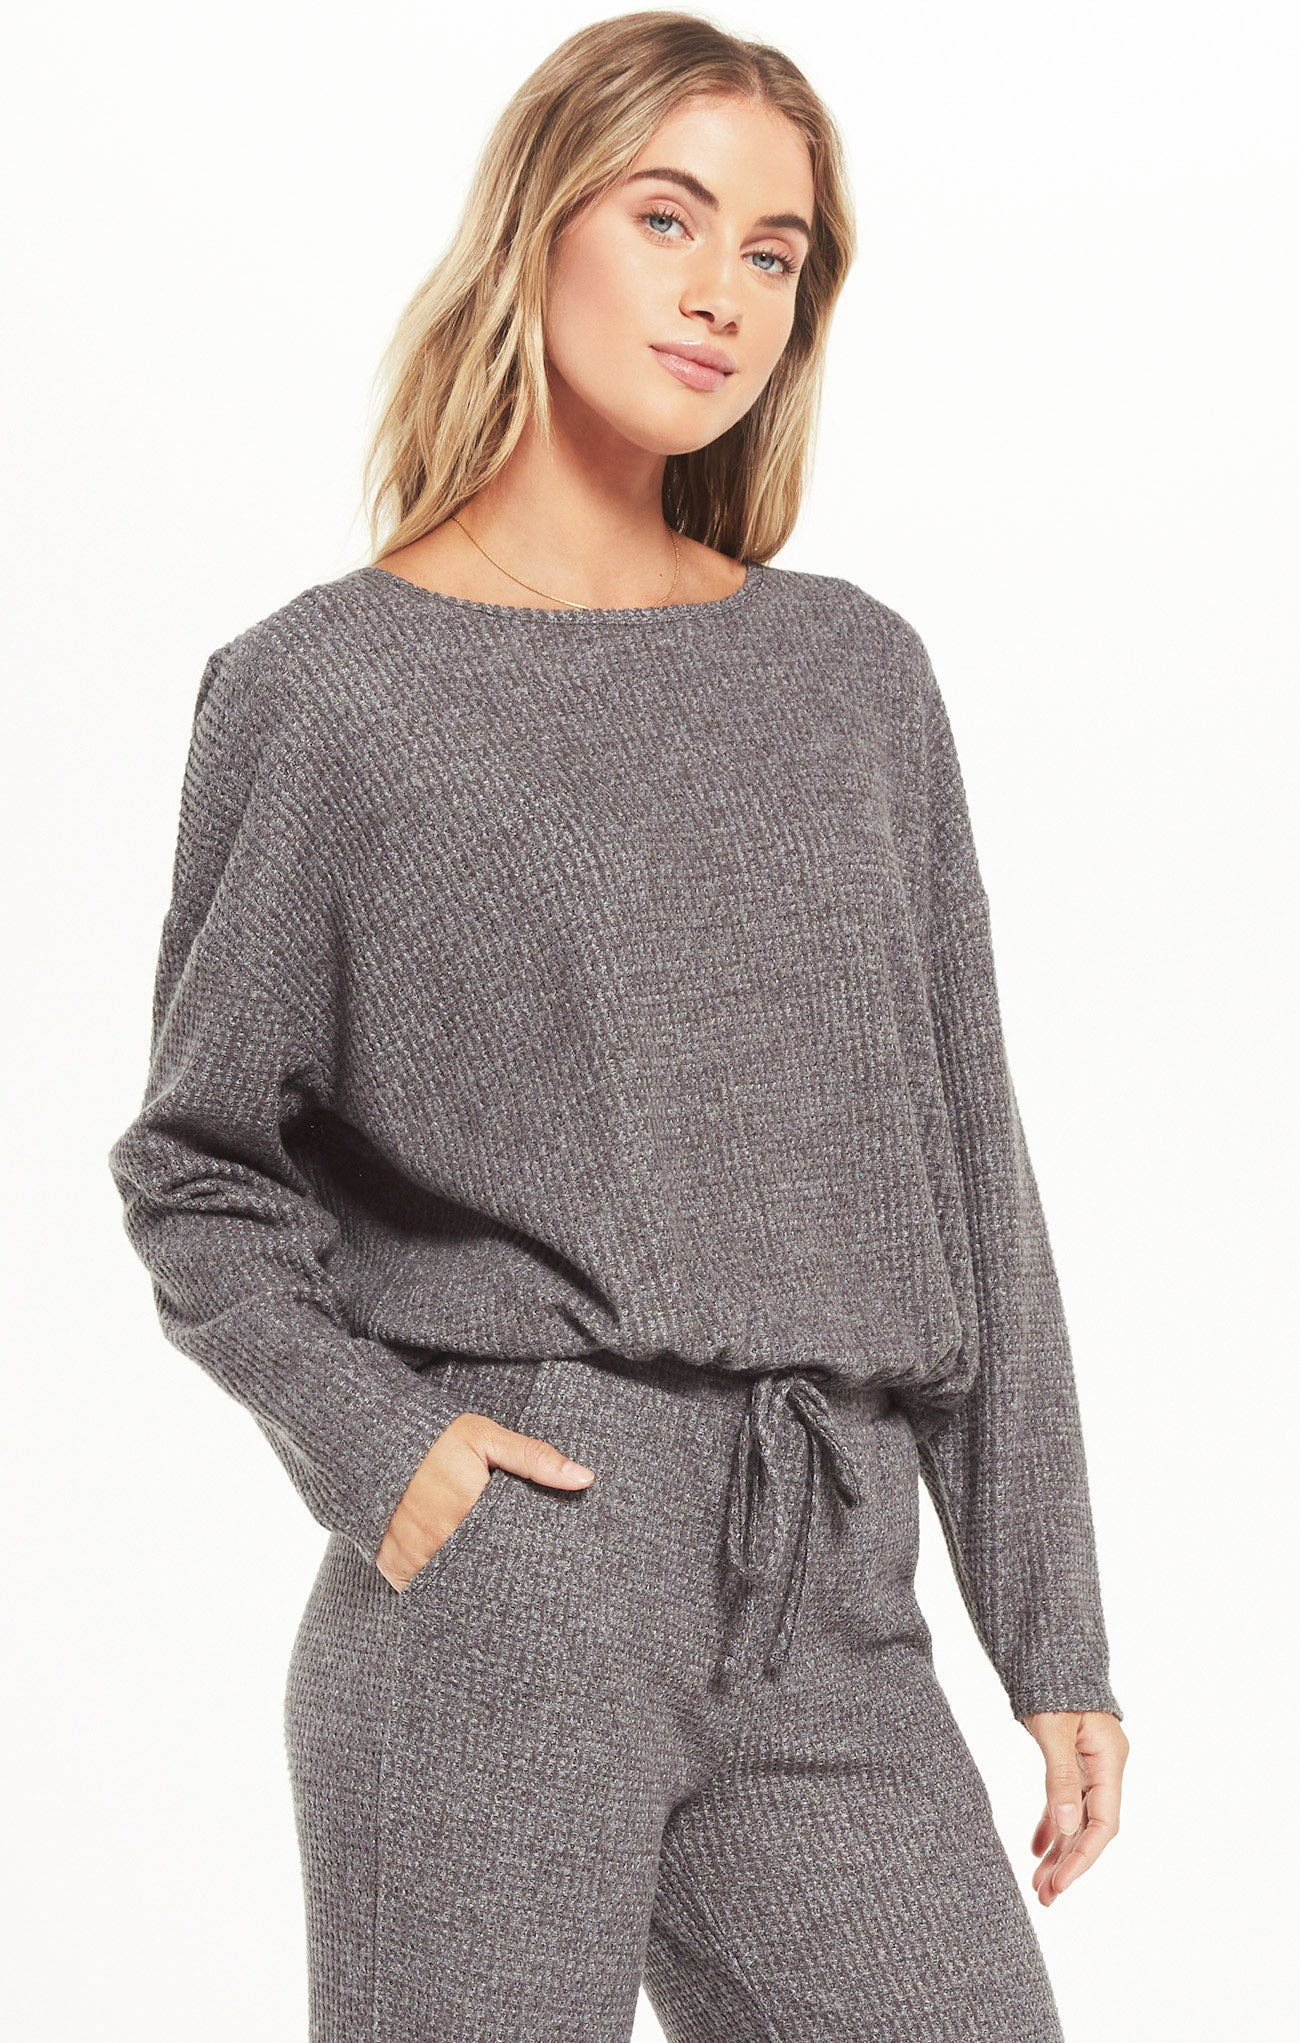 Tops Hang Out Thermal Long Sleeve Top Charcoal